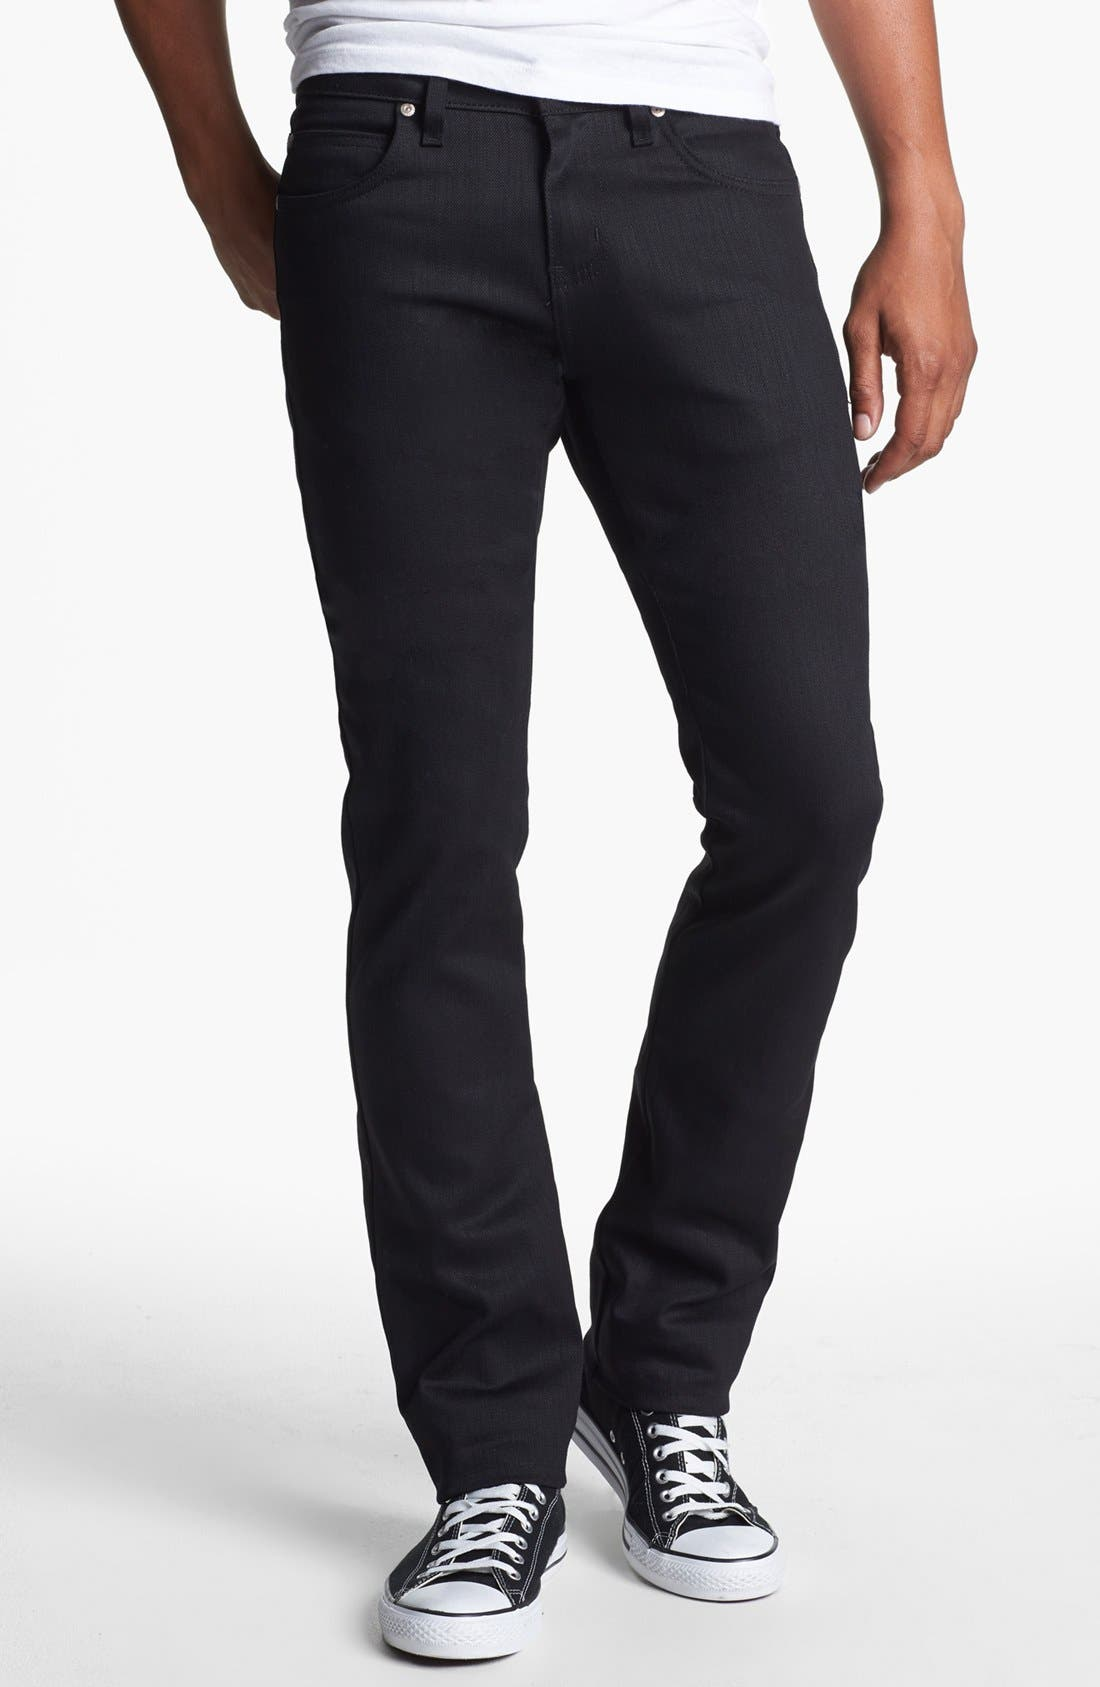 Main Image - Naked & Famous Denim Skinny Guy Skinny Fit Jeans (Black Power Stretch)